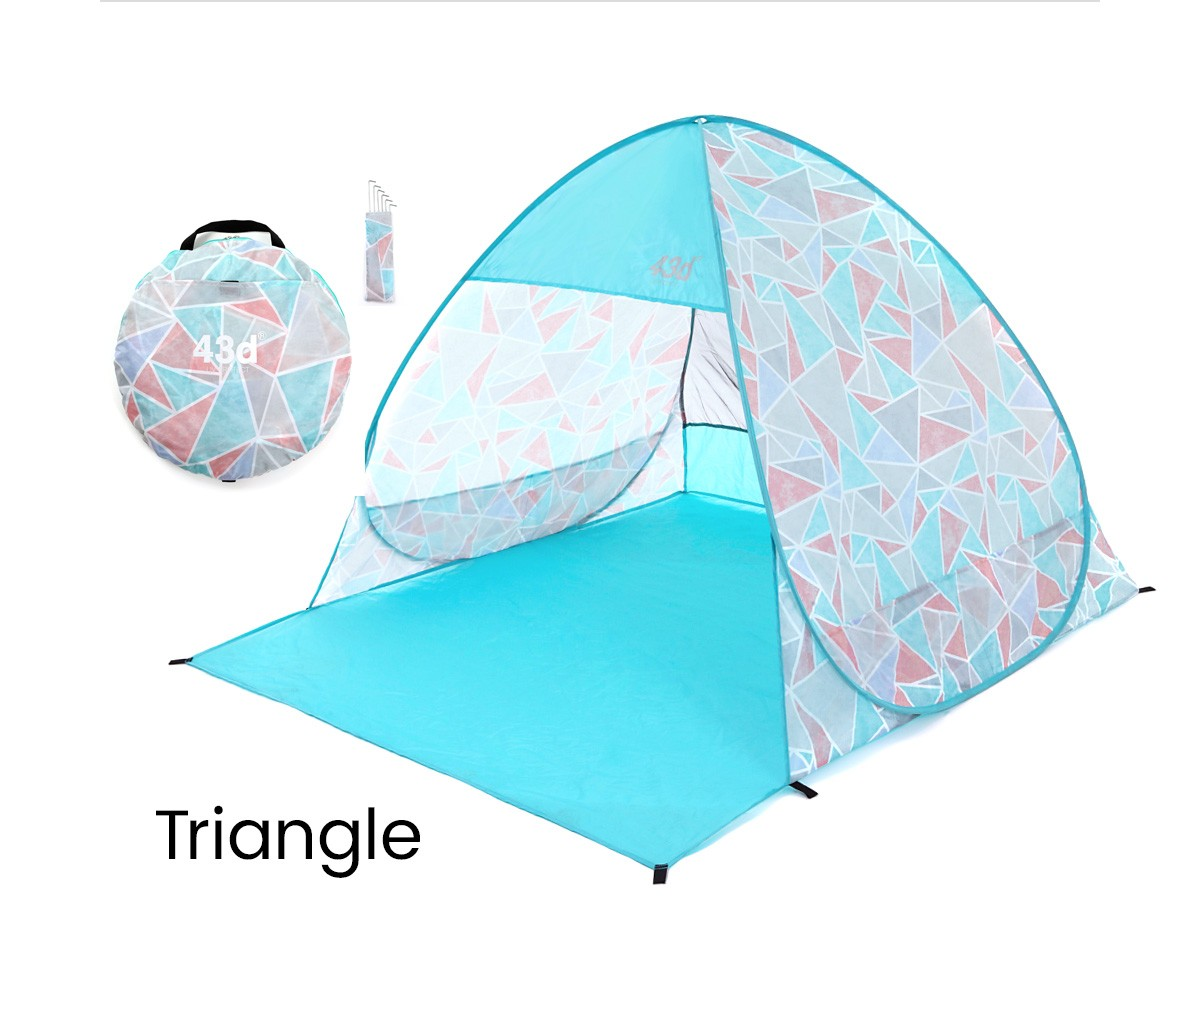 Triangle 43DEGREES ワンタッチテント